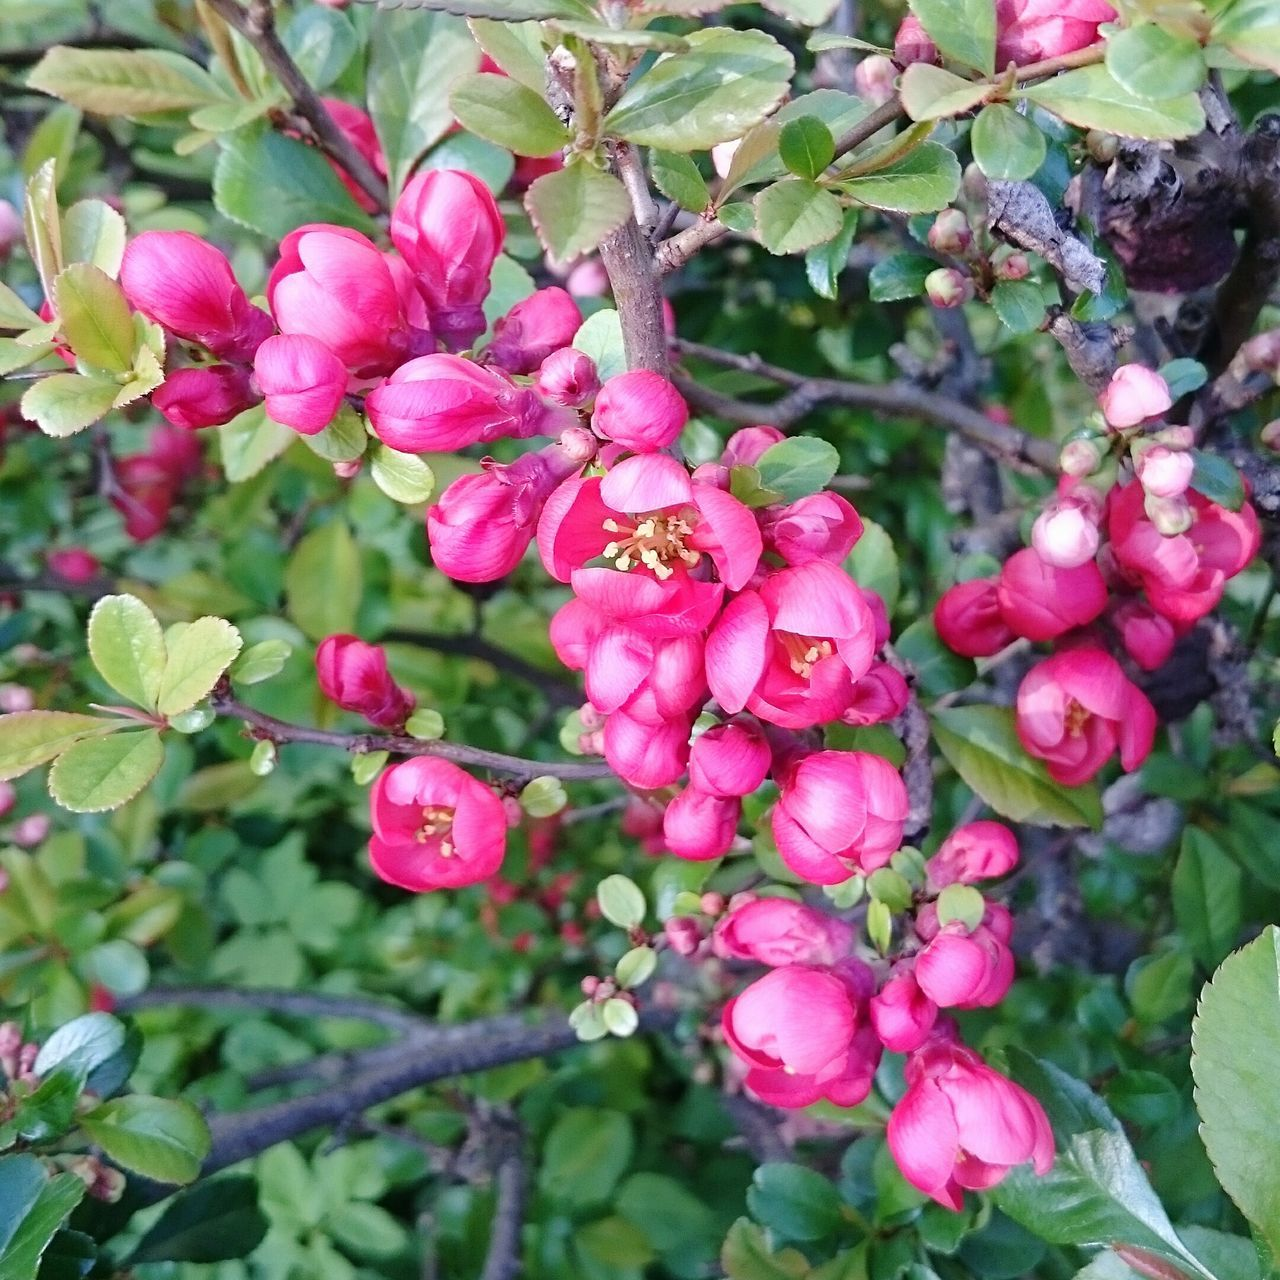 growth, pink color, flower, beauty in nature, nature, freshness, outdoors, petal, plant, no people, day, fragility, leaf, tree, green color, blooming, branch, close-up, flower head